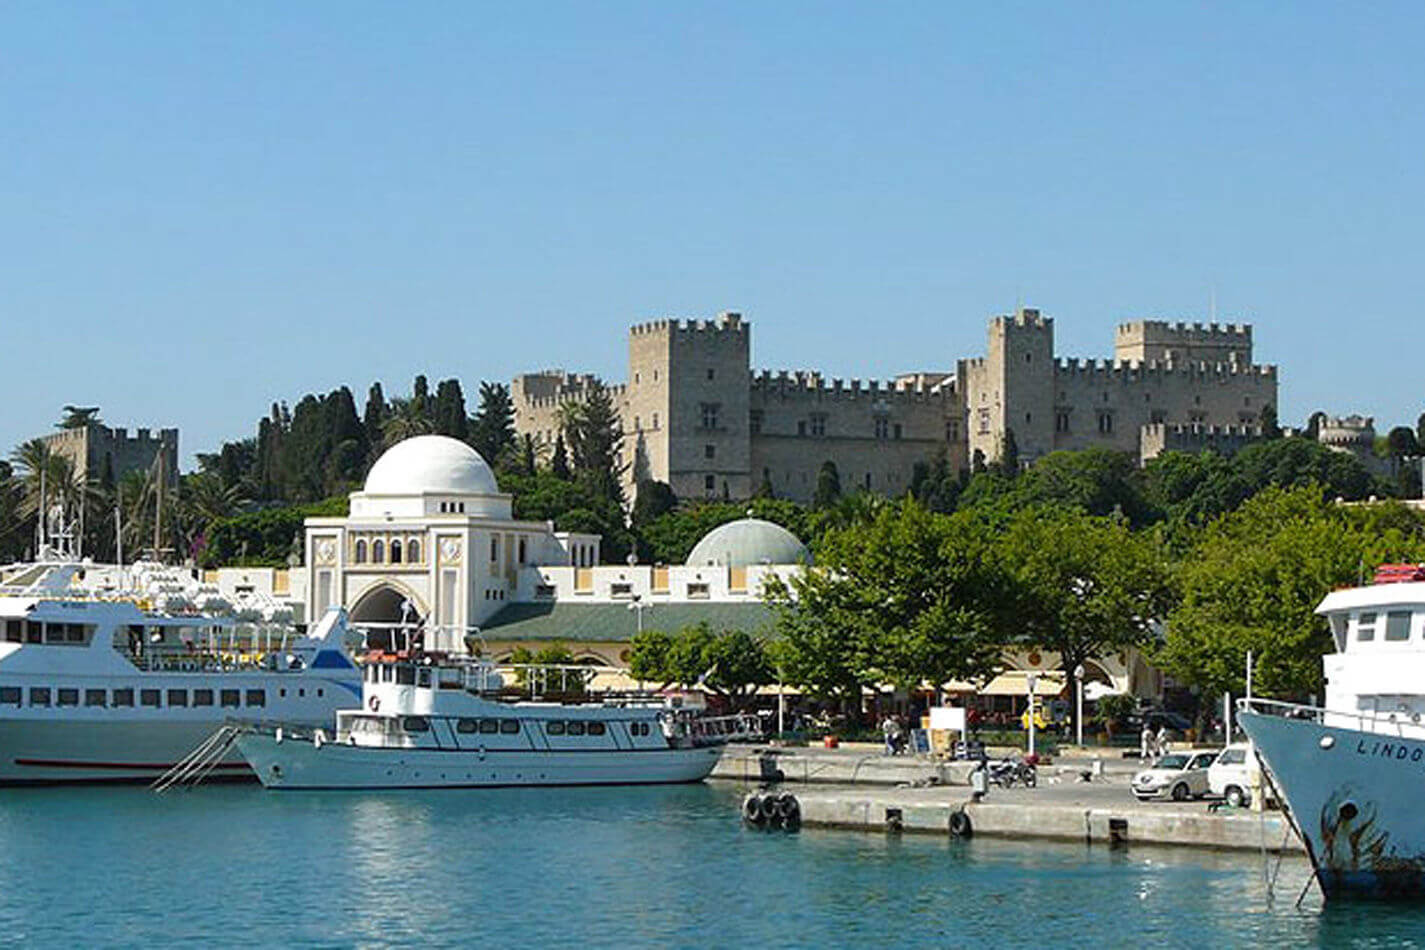 CITY TOUR NEW AND OLD TOWN - RHODES ISLAND